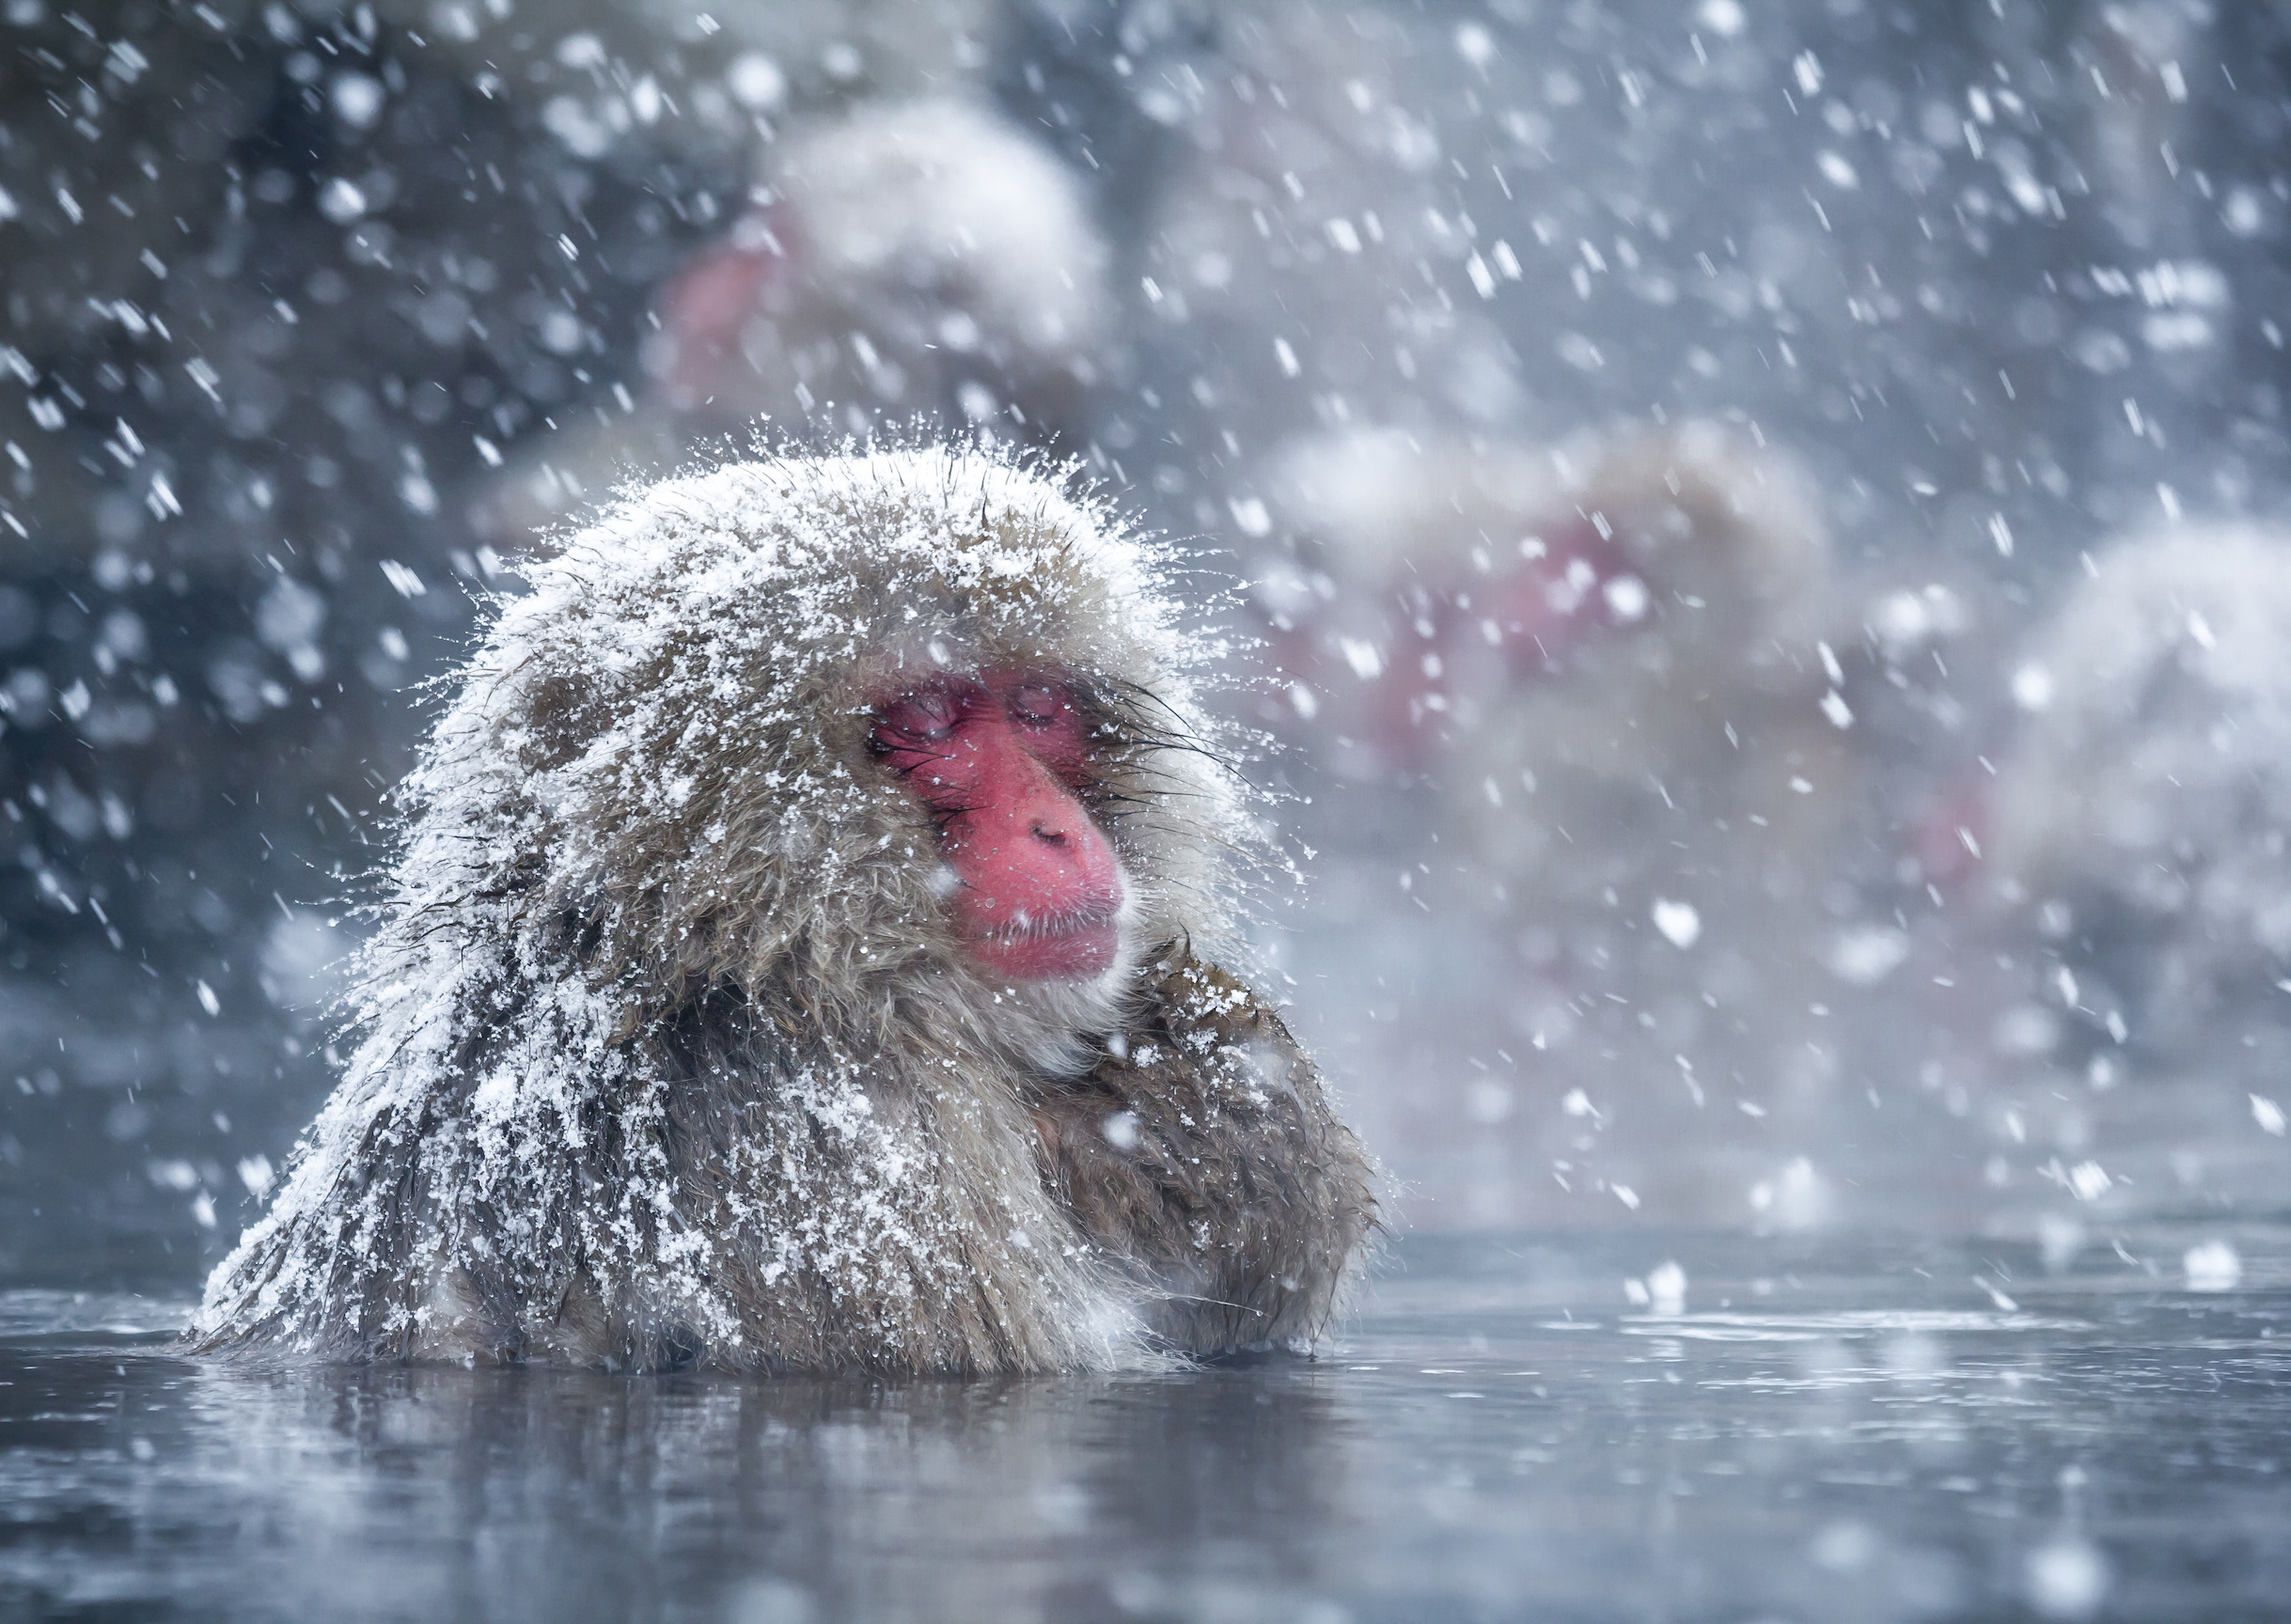 Japanese snow monkeys have been bathing in a natural hot spring at Jigokudani for decades, and the baths have even become a popular tourist attraction.